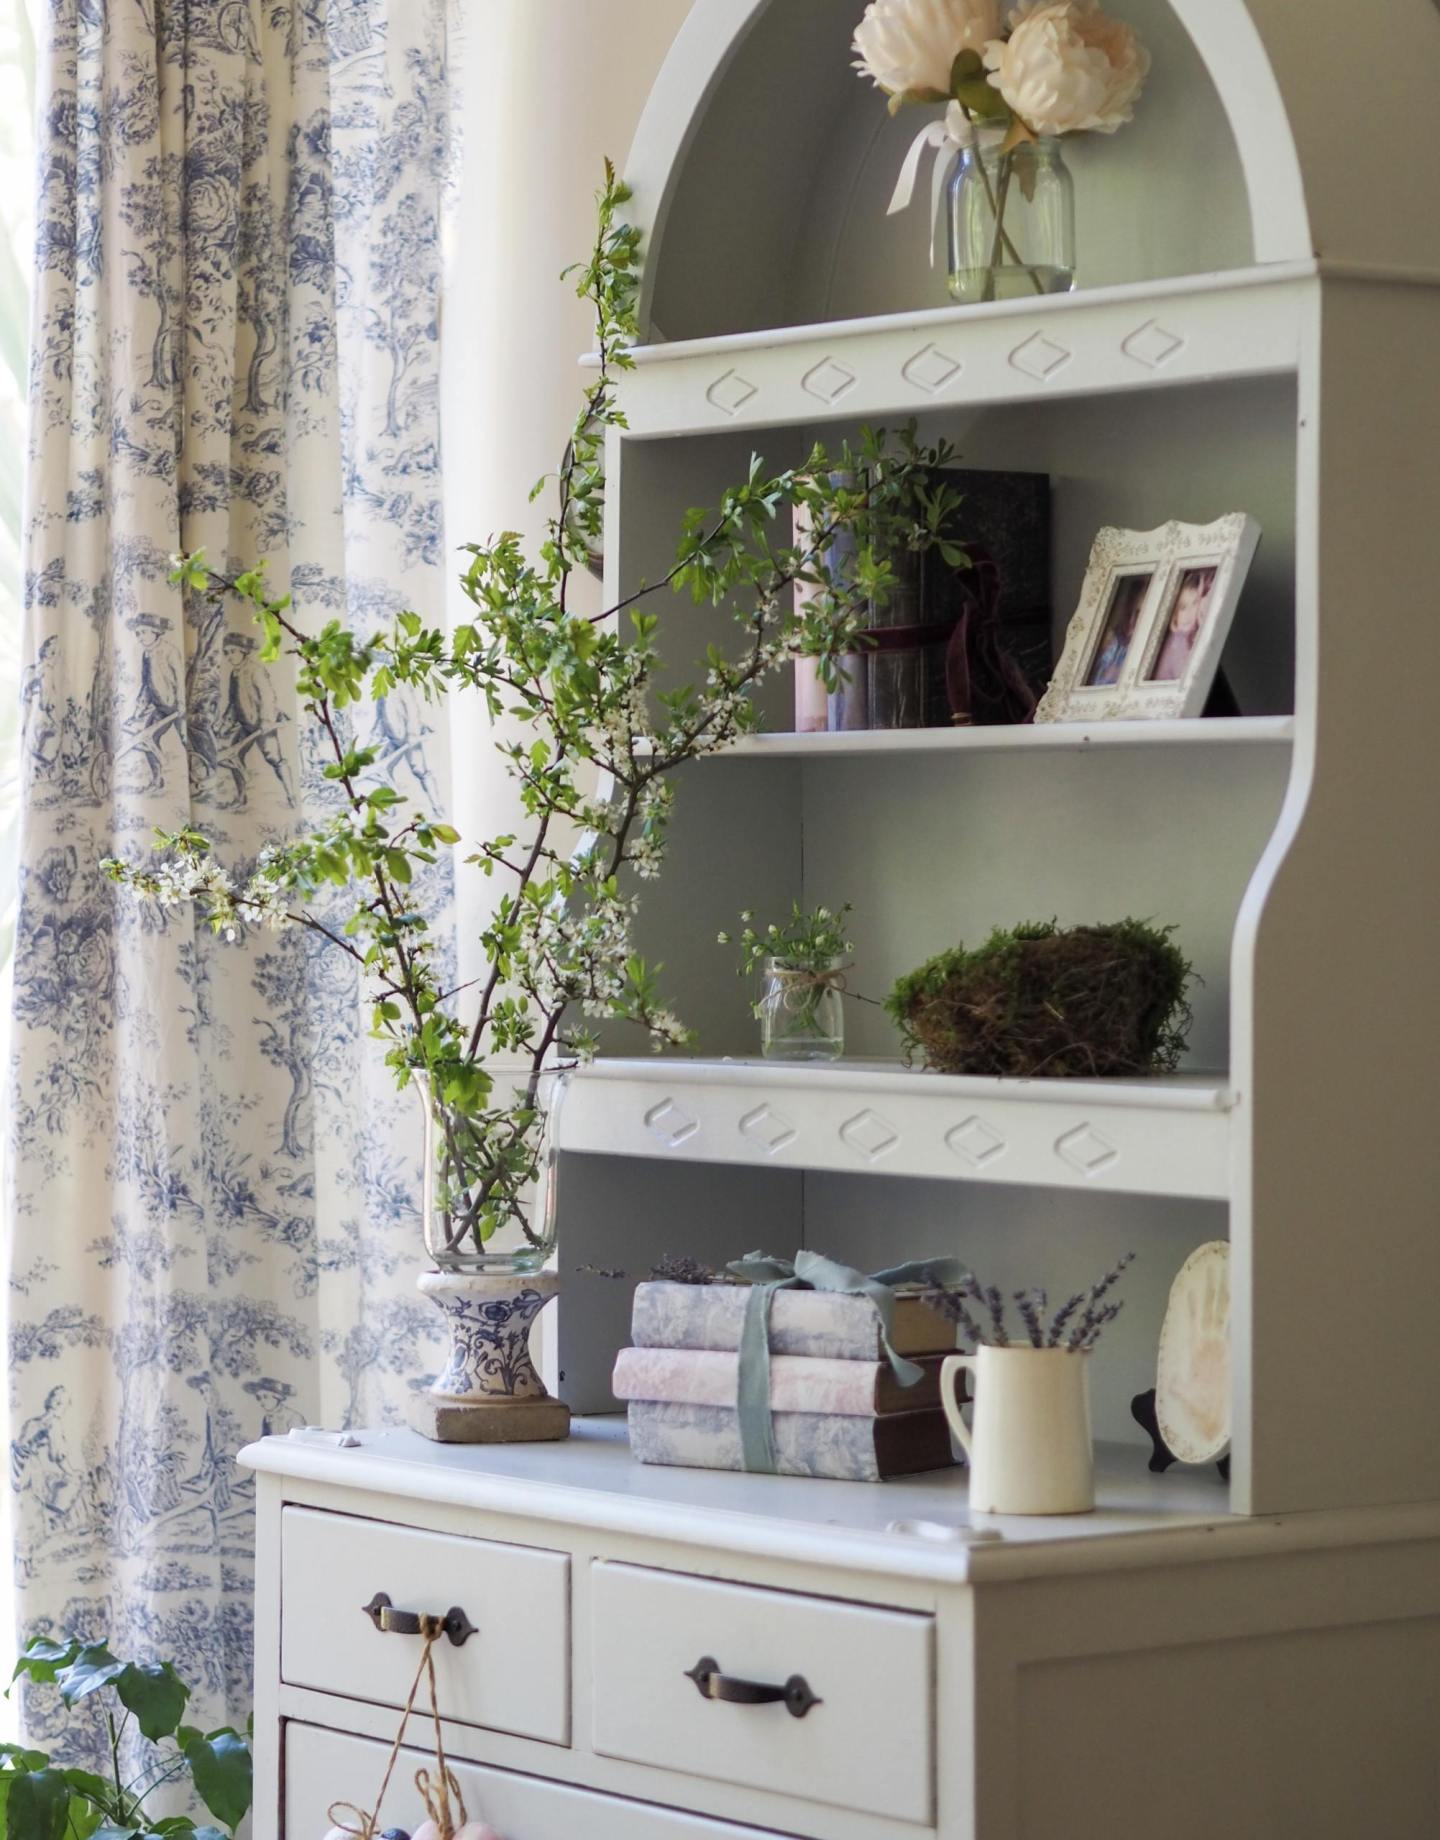 Creative styling for your Welsh dresser